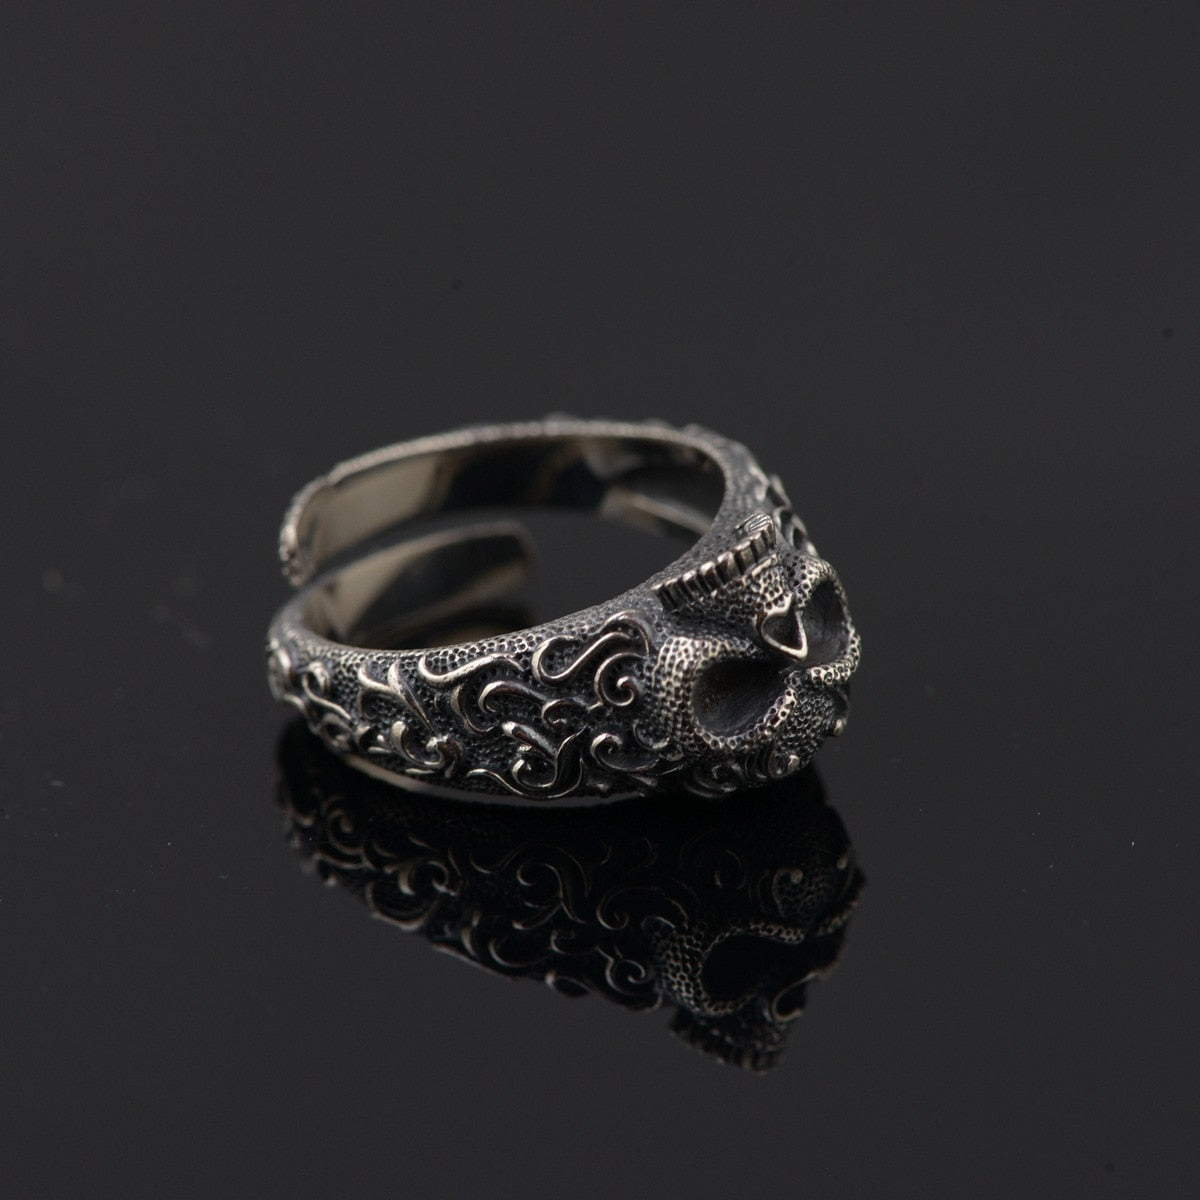 Gothic Punk Skull Rings For Men And Women 925 Sterling Silver Jewelry Resizable